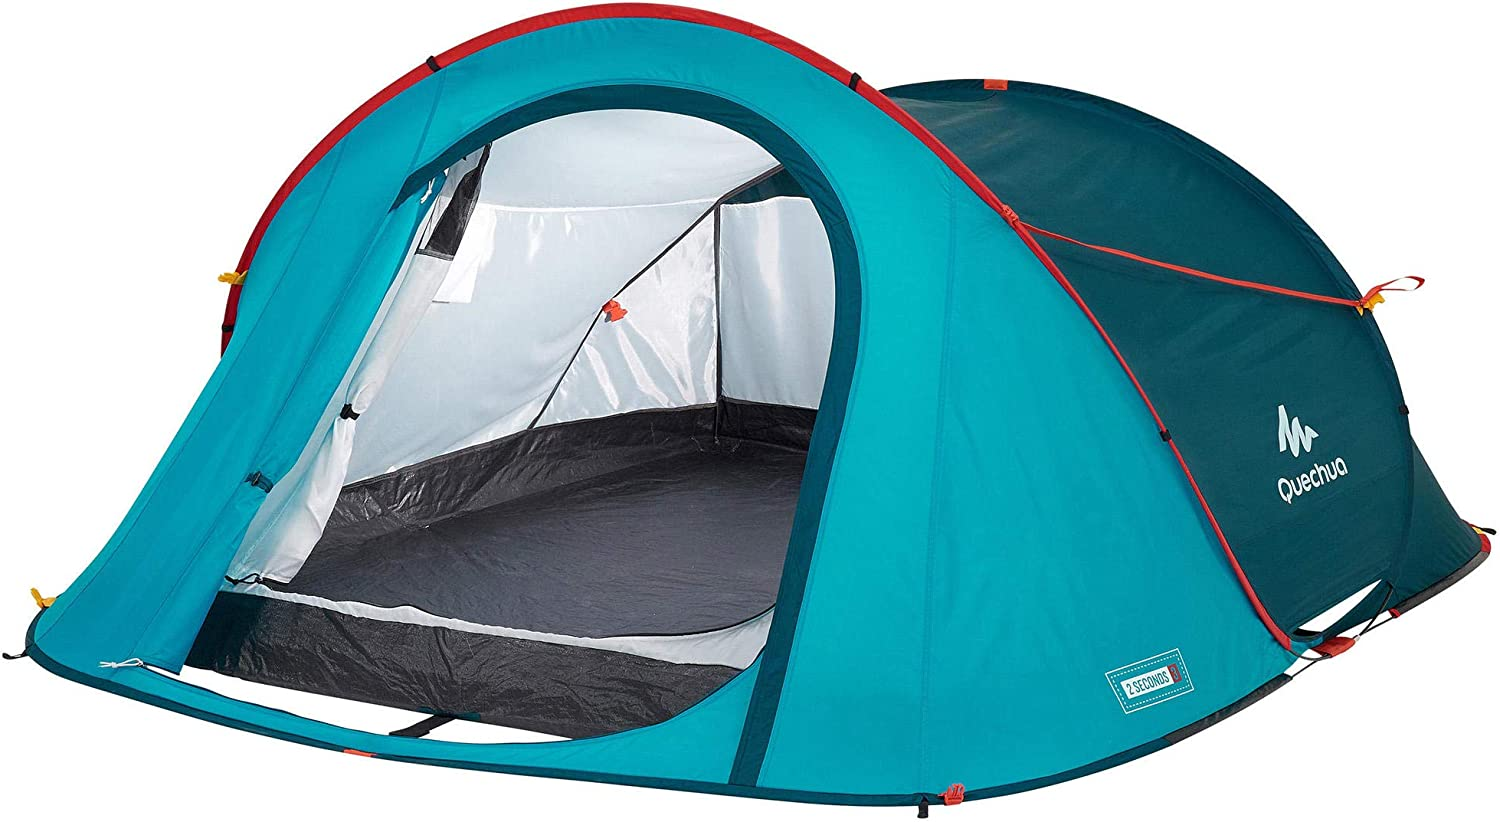 Fishing 190*130*100 cm Camping Hiking Waterproof UV Protection Traveling Perfect for Beach 2-3 Persons Lightweight Instant Popup Tent Hunting Outdoor DALADA Automatic Pop Up Camping Tent